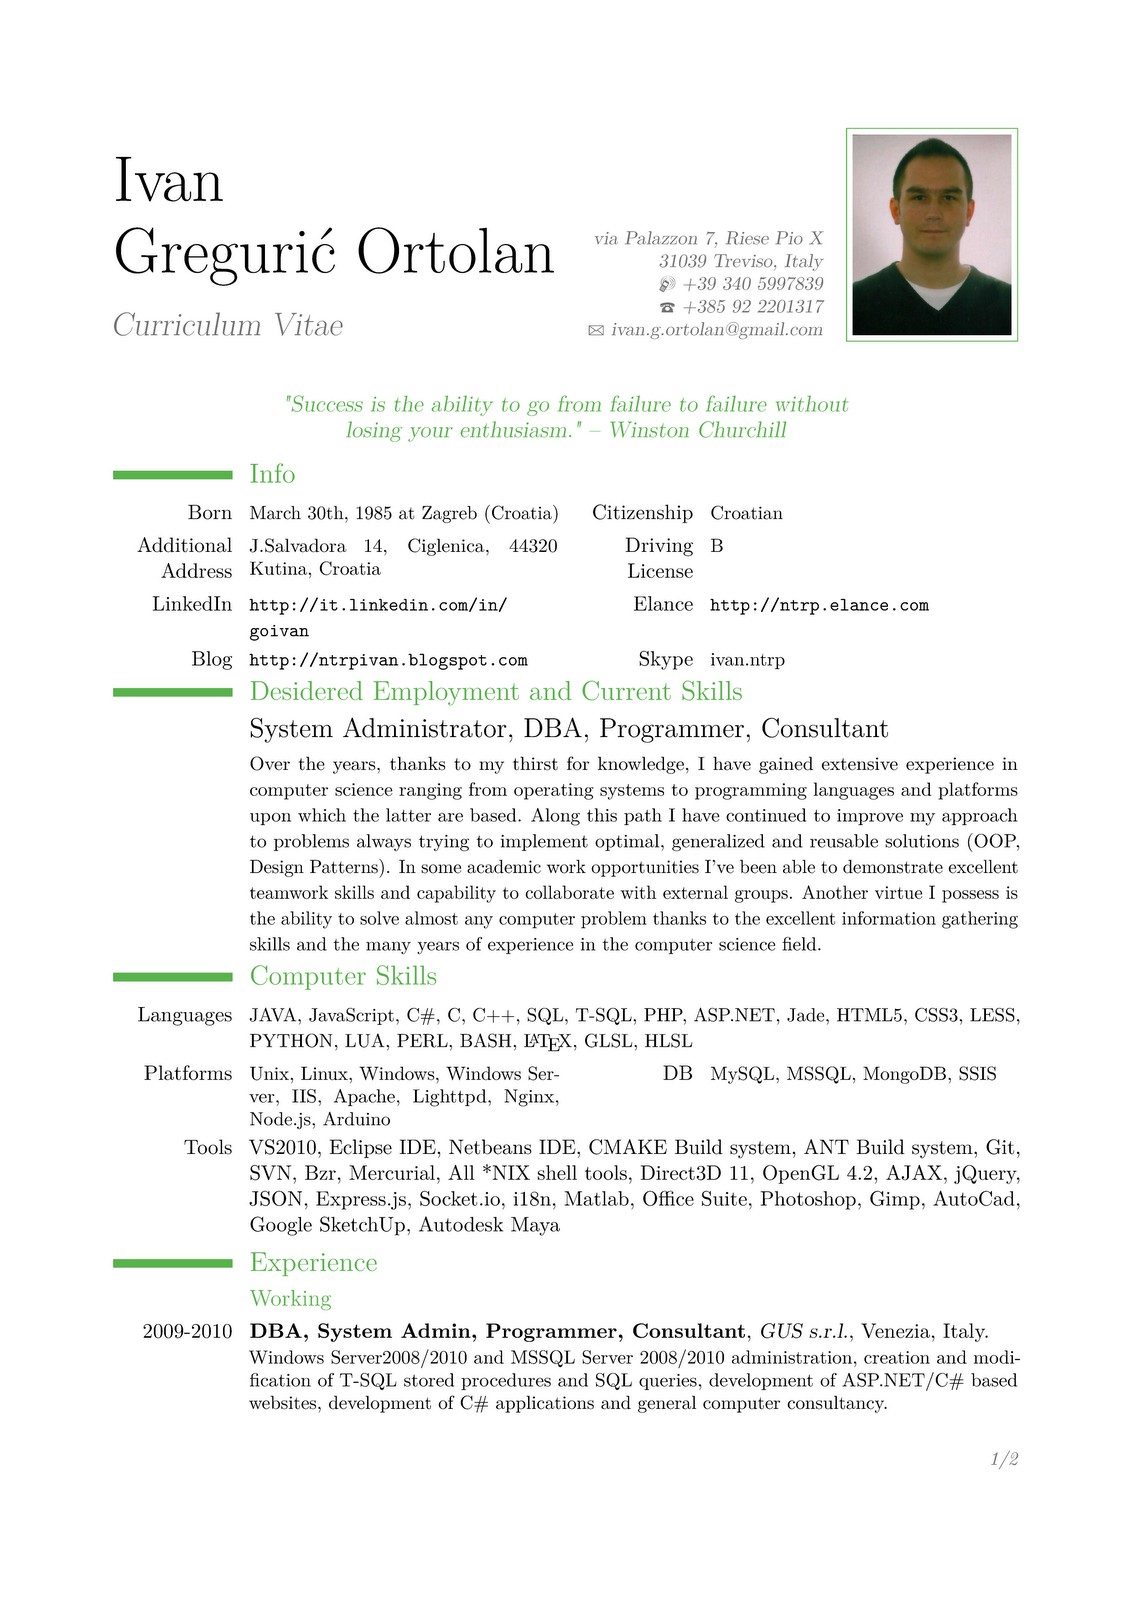 related posts resume curriculum vitae example - Resume Curriculum Vitae Template